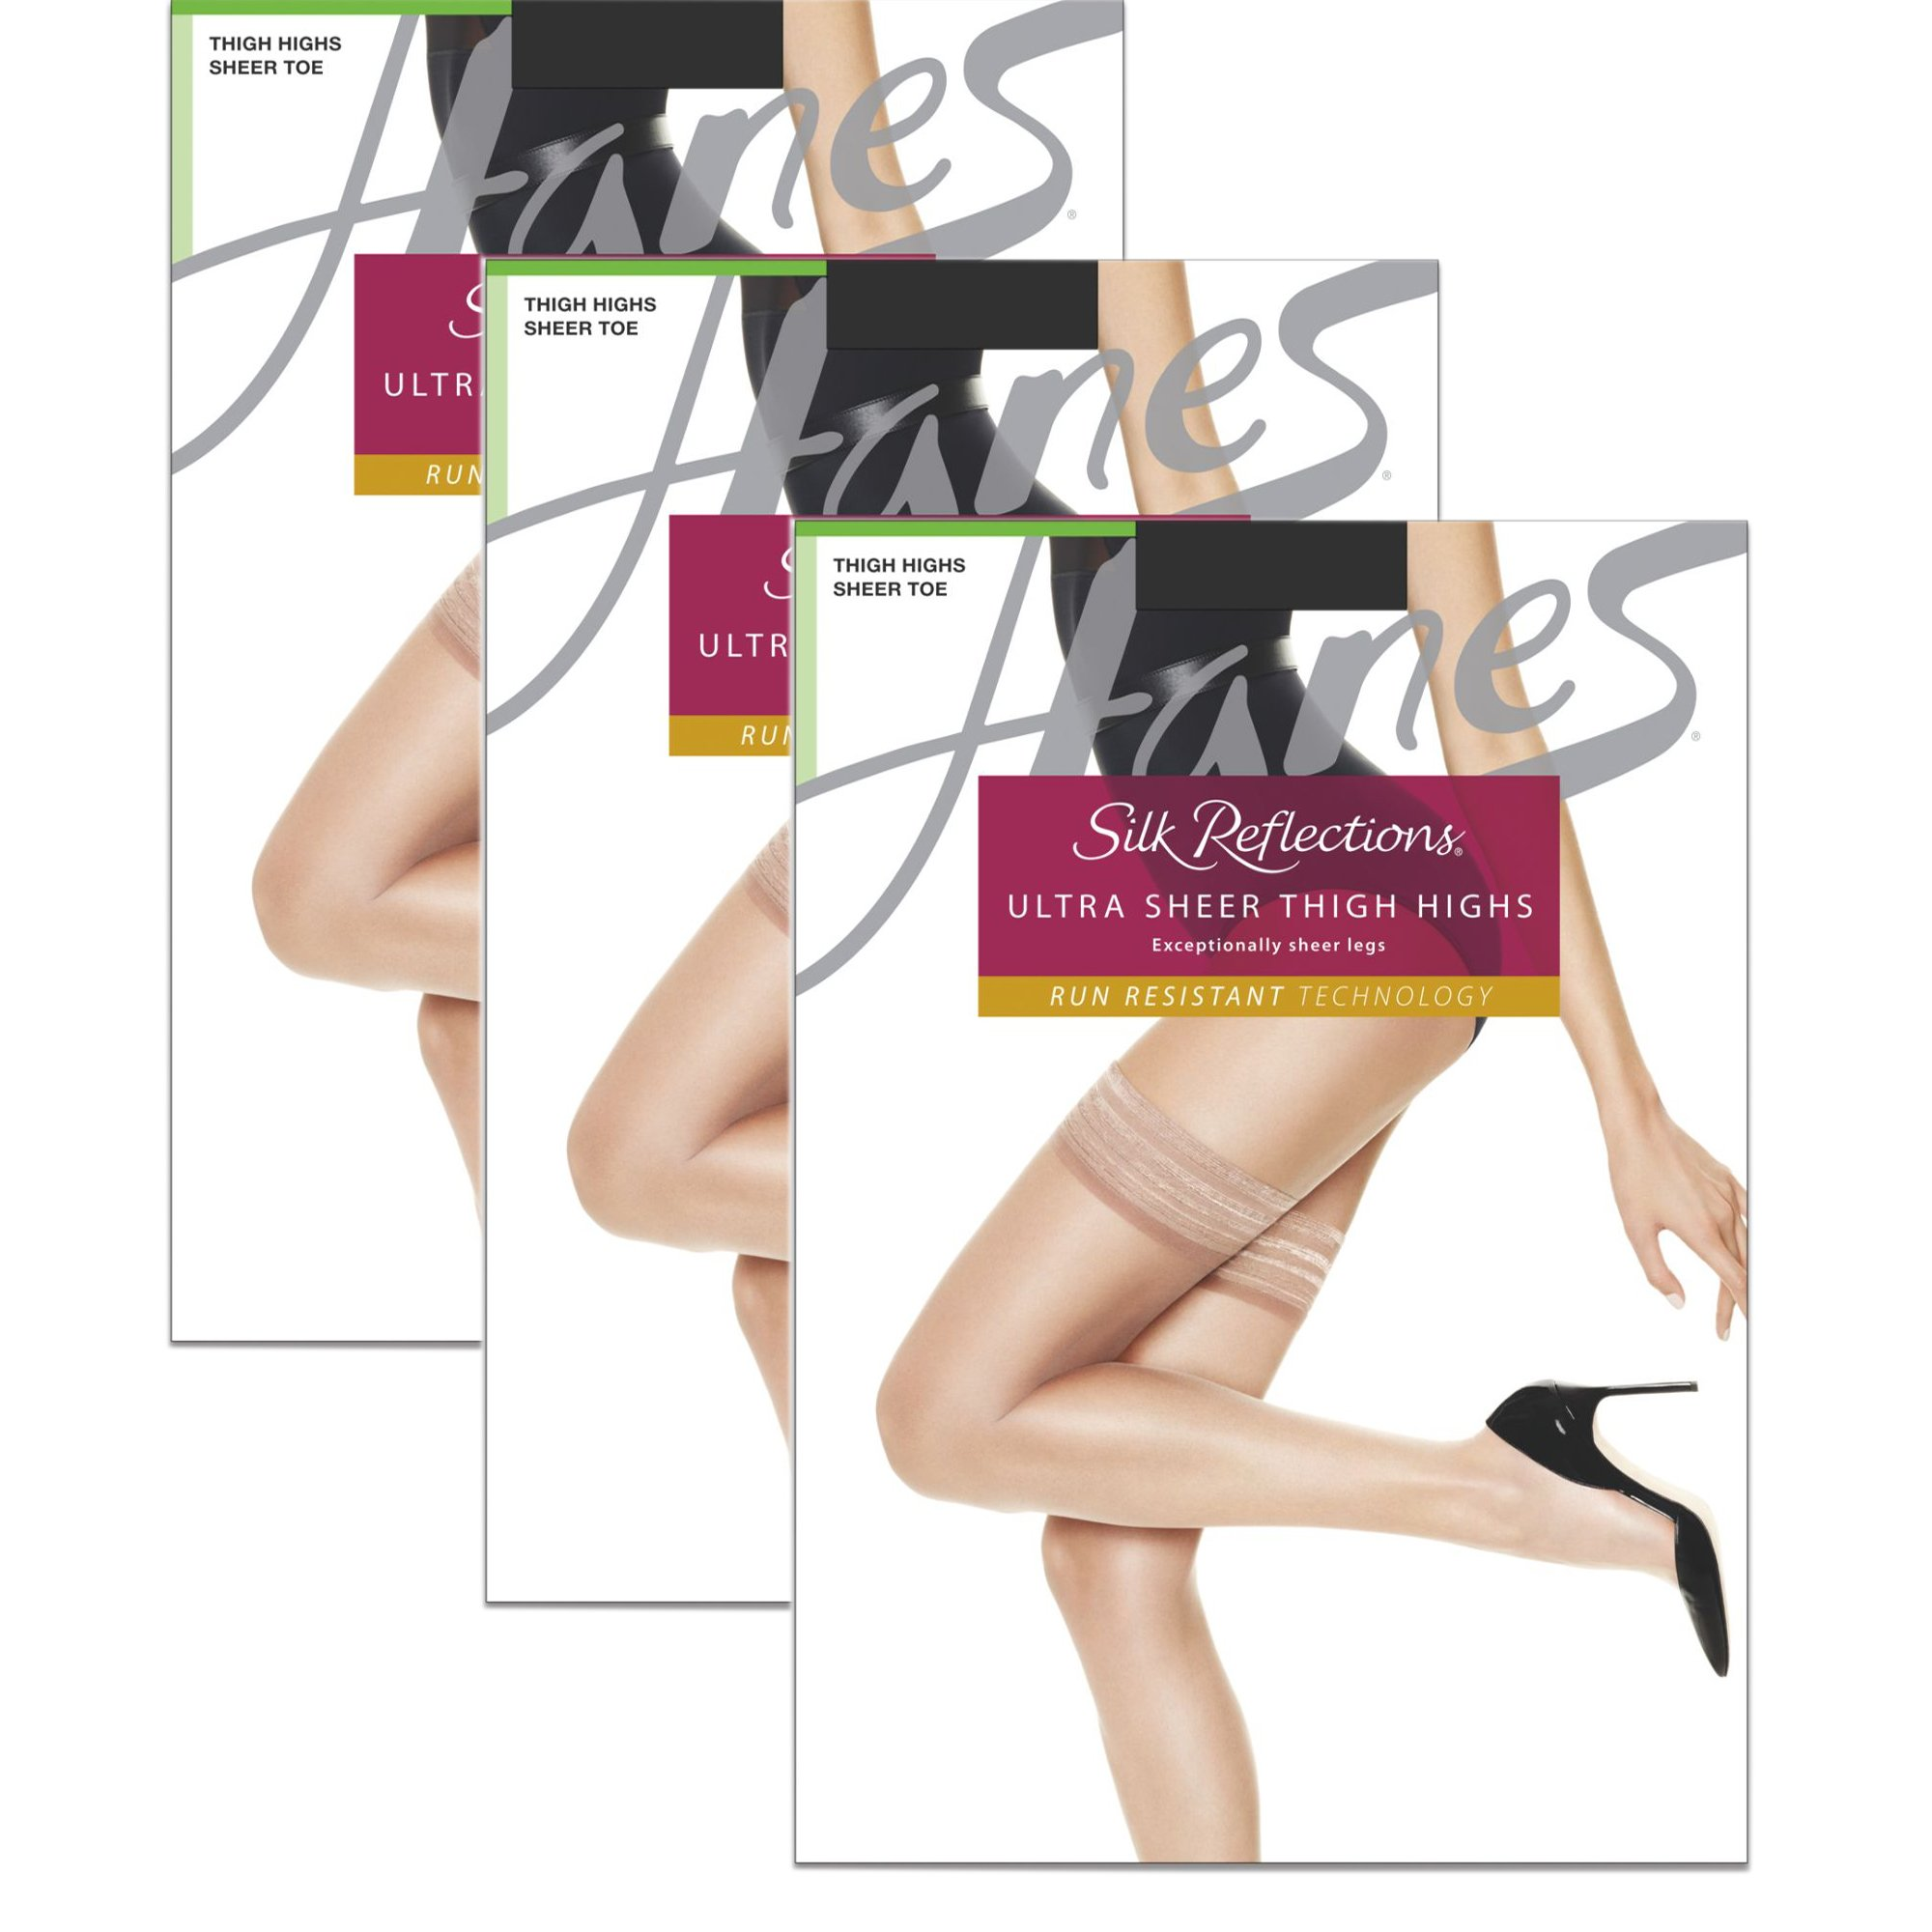 Hanes Wome`s Set of 3 Silk Reflections Women`s High Waist Control Top AB, Little Color